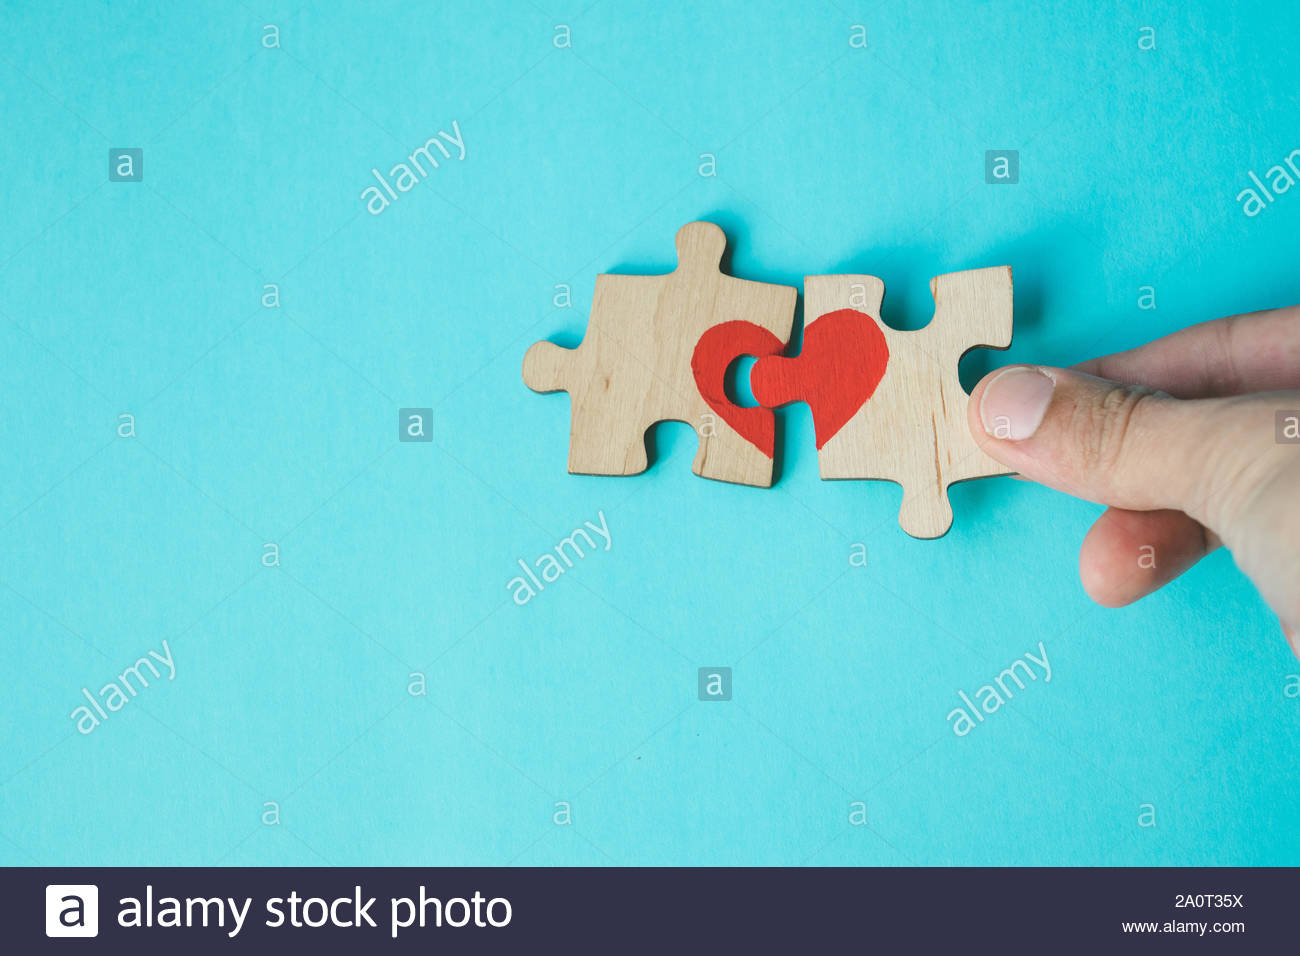 Female hand connecting puzzle with drawn red heart on blue 1300x956